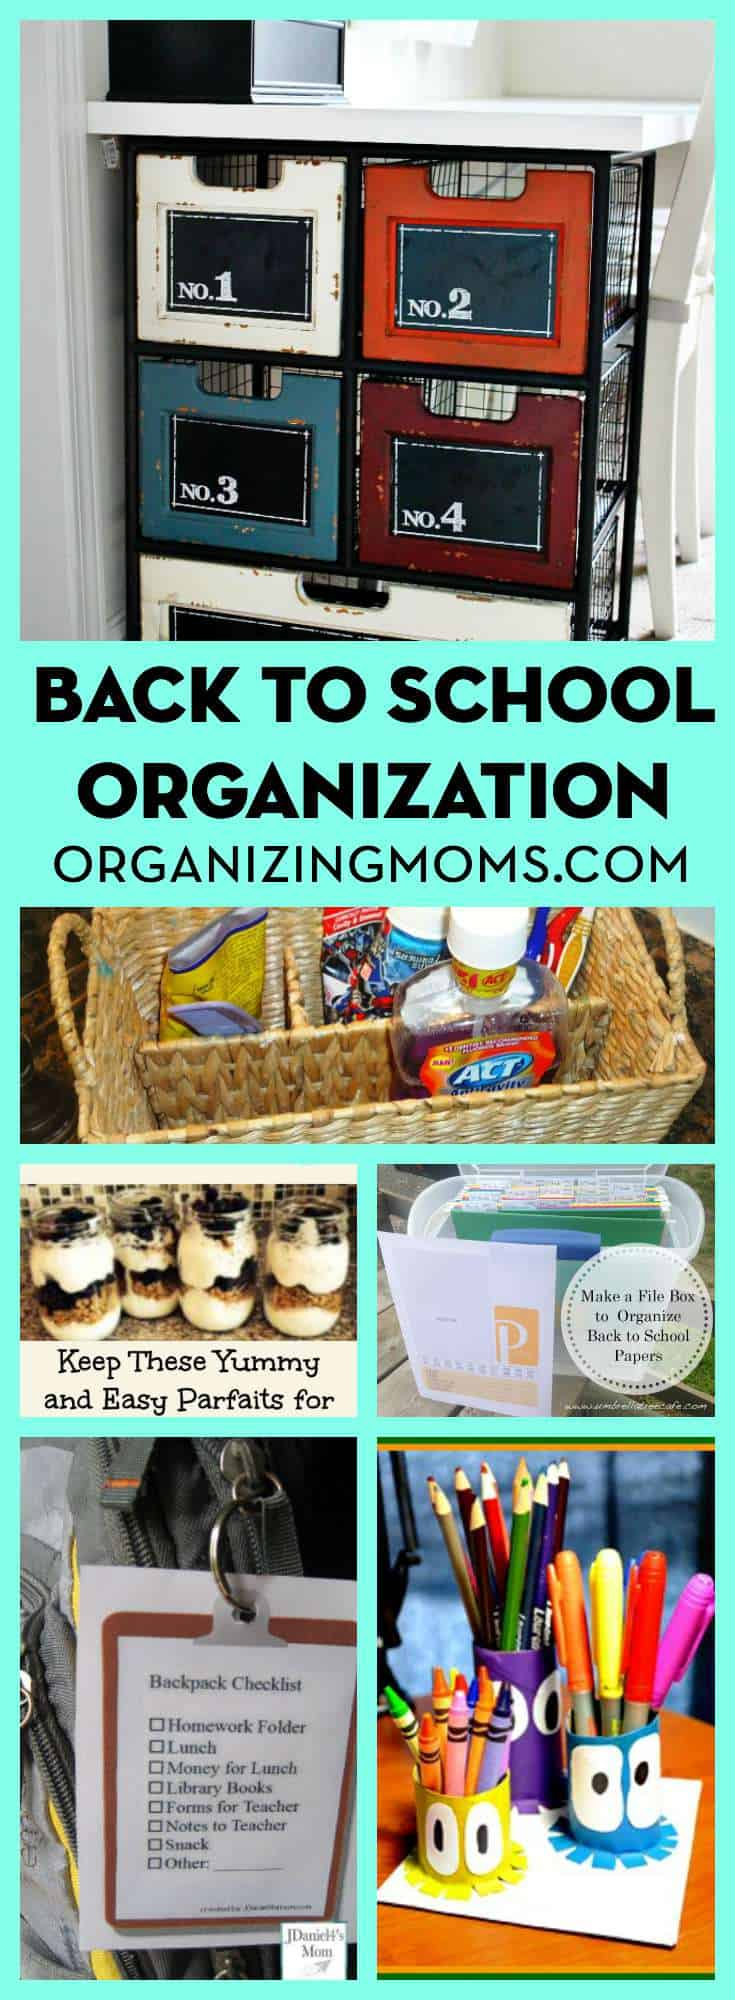 Back to school organization ideas organizing moms - Back to school organization ...